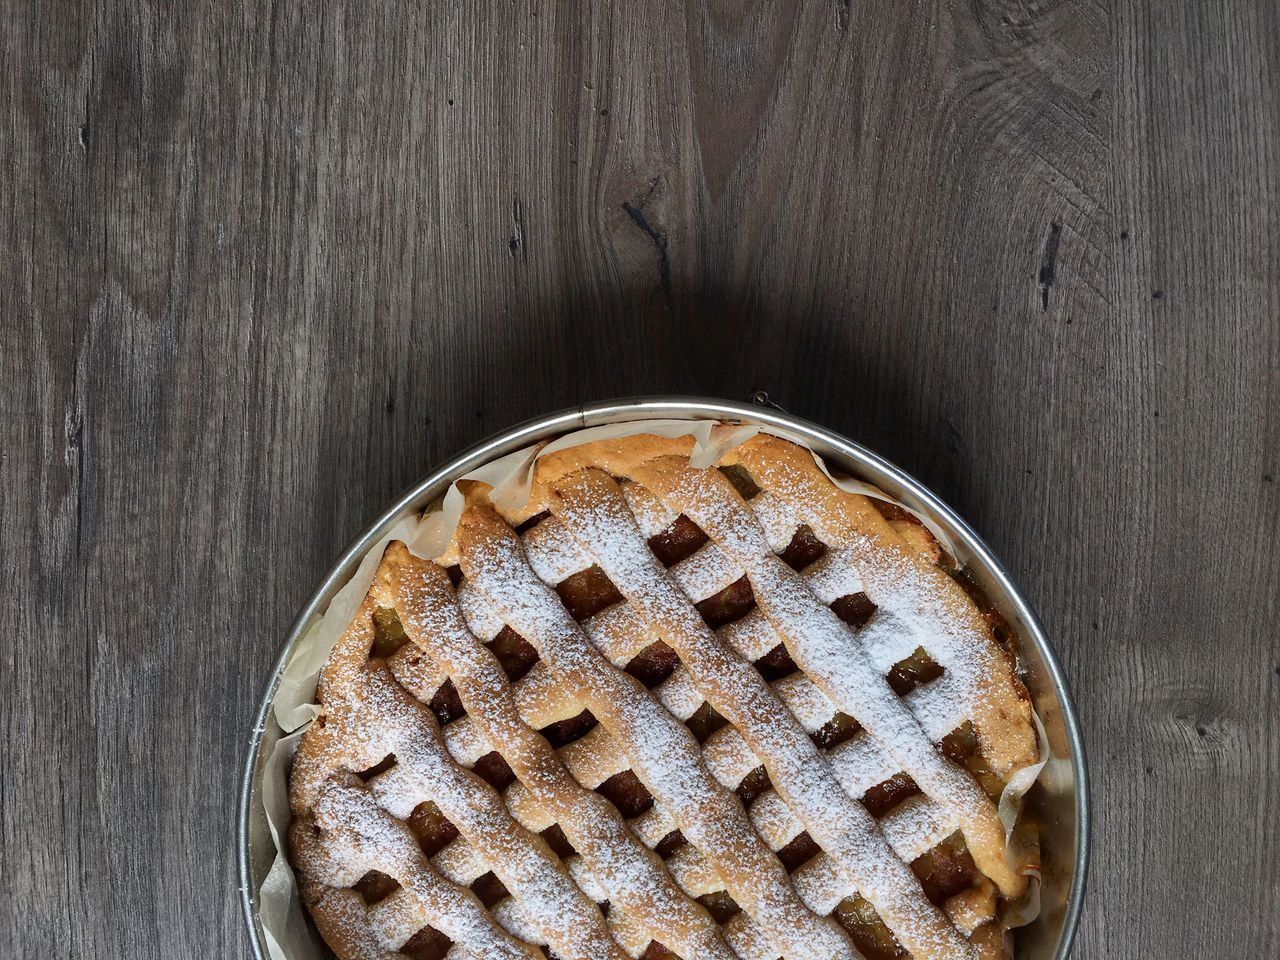 Apple pie Sweet Food Food Baked Food And Drink Indoors  No People Wood - Material Cake Dessert Directly Above Freshness Tart - Dessert Ready-to-eat Sweet Pie Apple Pie Close-up Day Baking Pan High Angle View Dessert Table